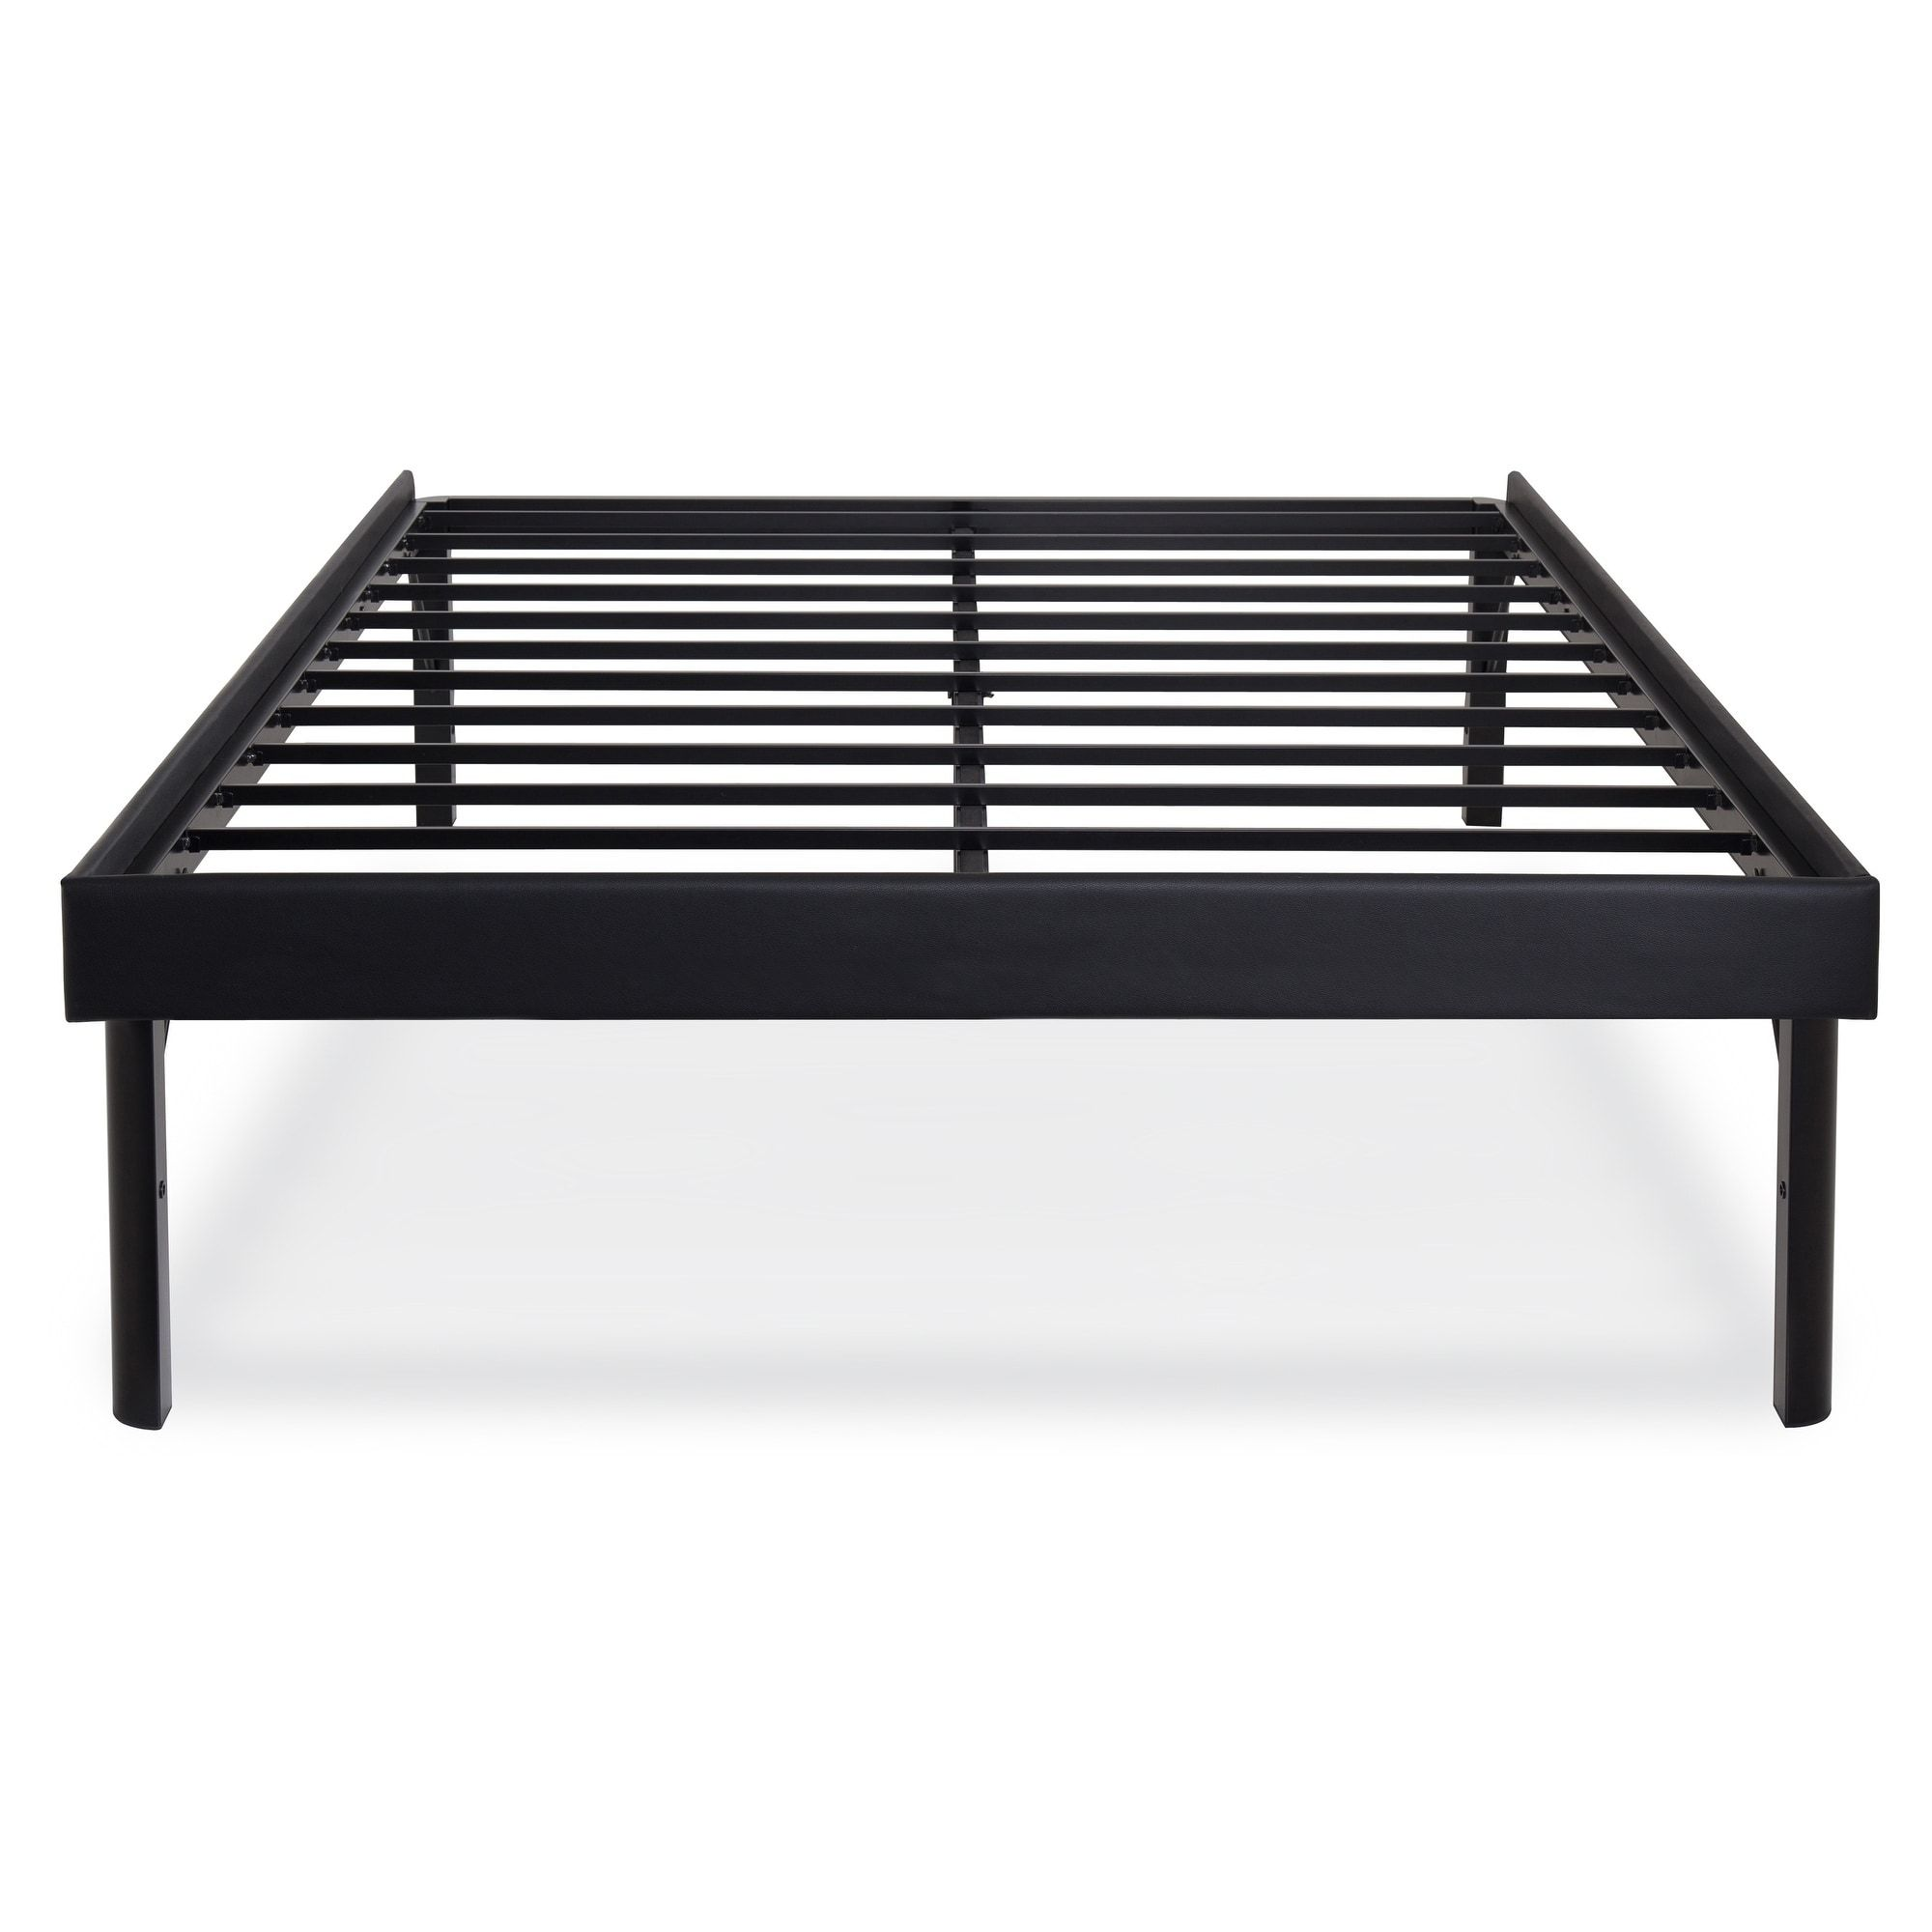 Queen Size Heavy Duty Metal Platform Bed Frame Holds Up To 2 000 Lbs Stuff To Buy Pinterest Bed Frame Platform Bed Frame And Metal Platform Bed